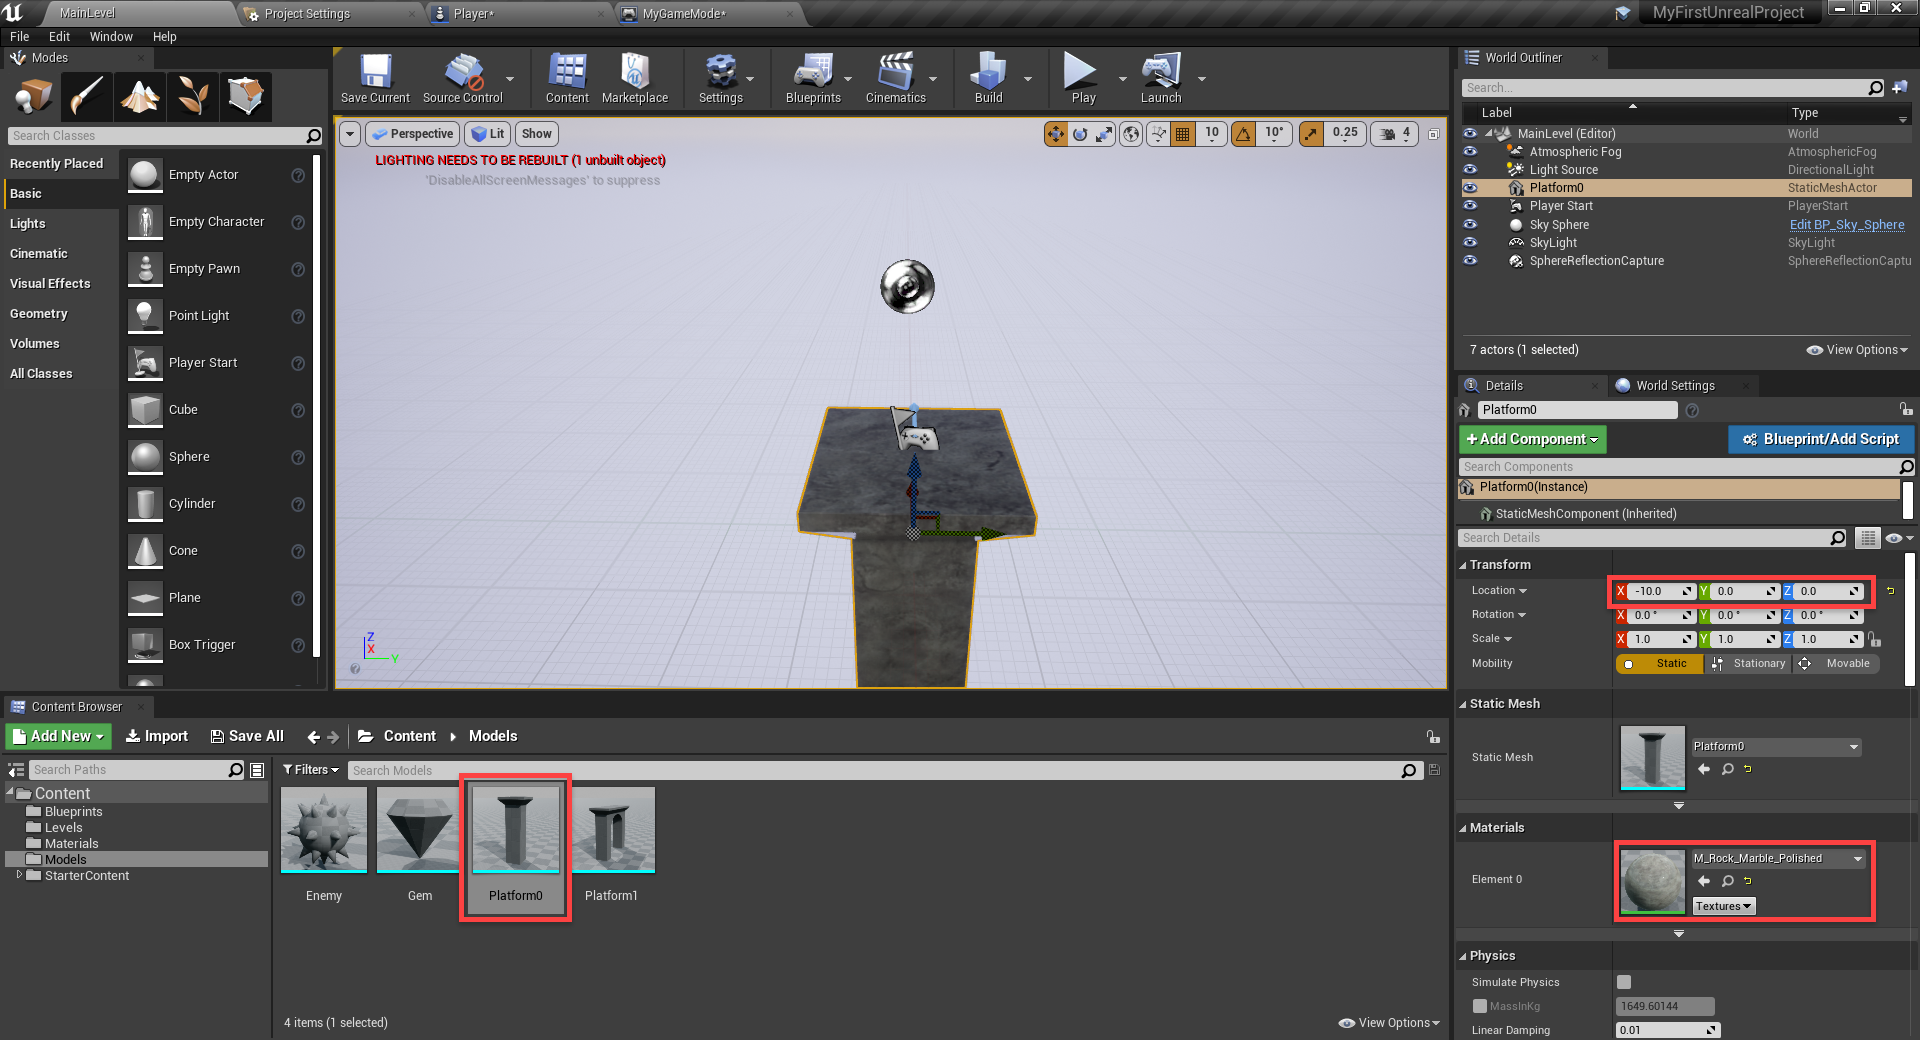 Unreal Engine with Platform level object added to scene